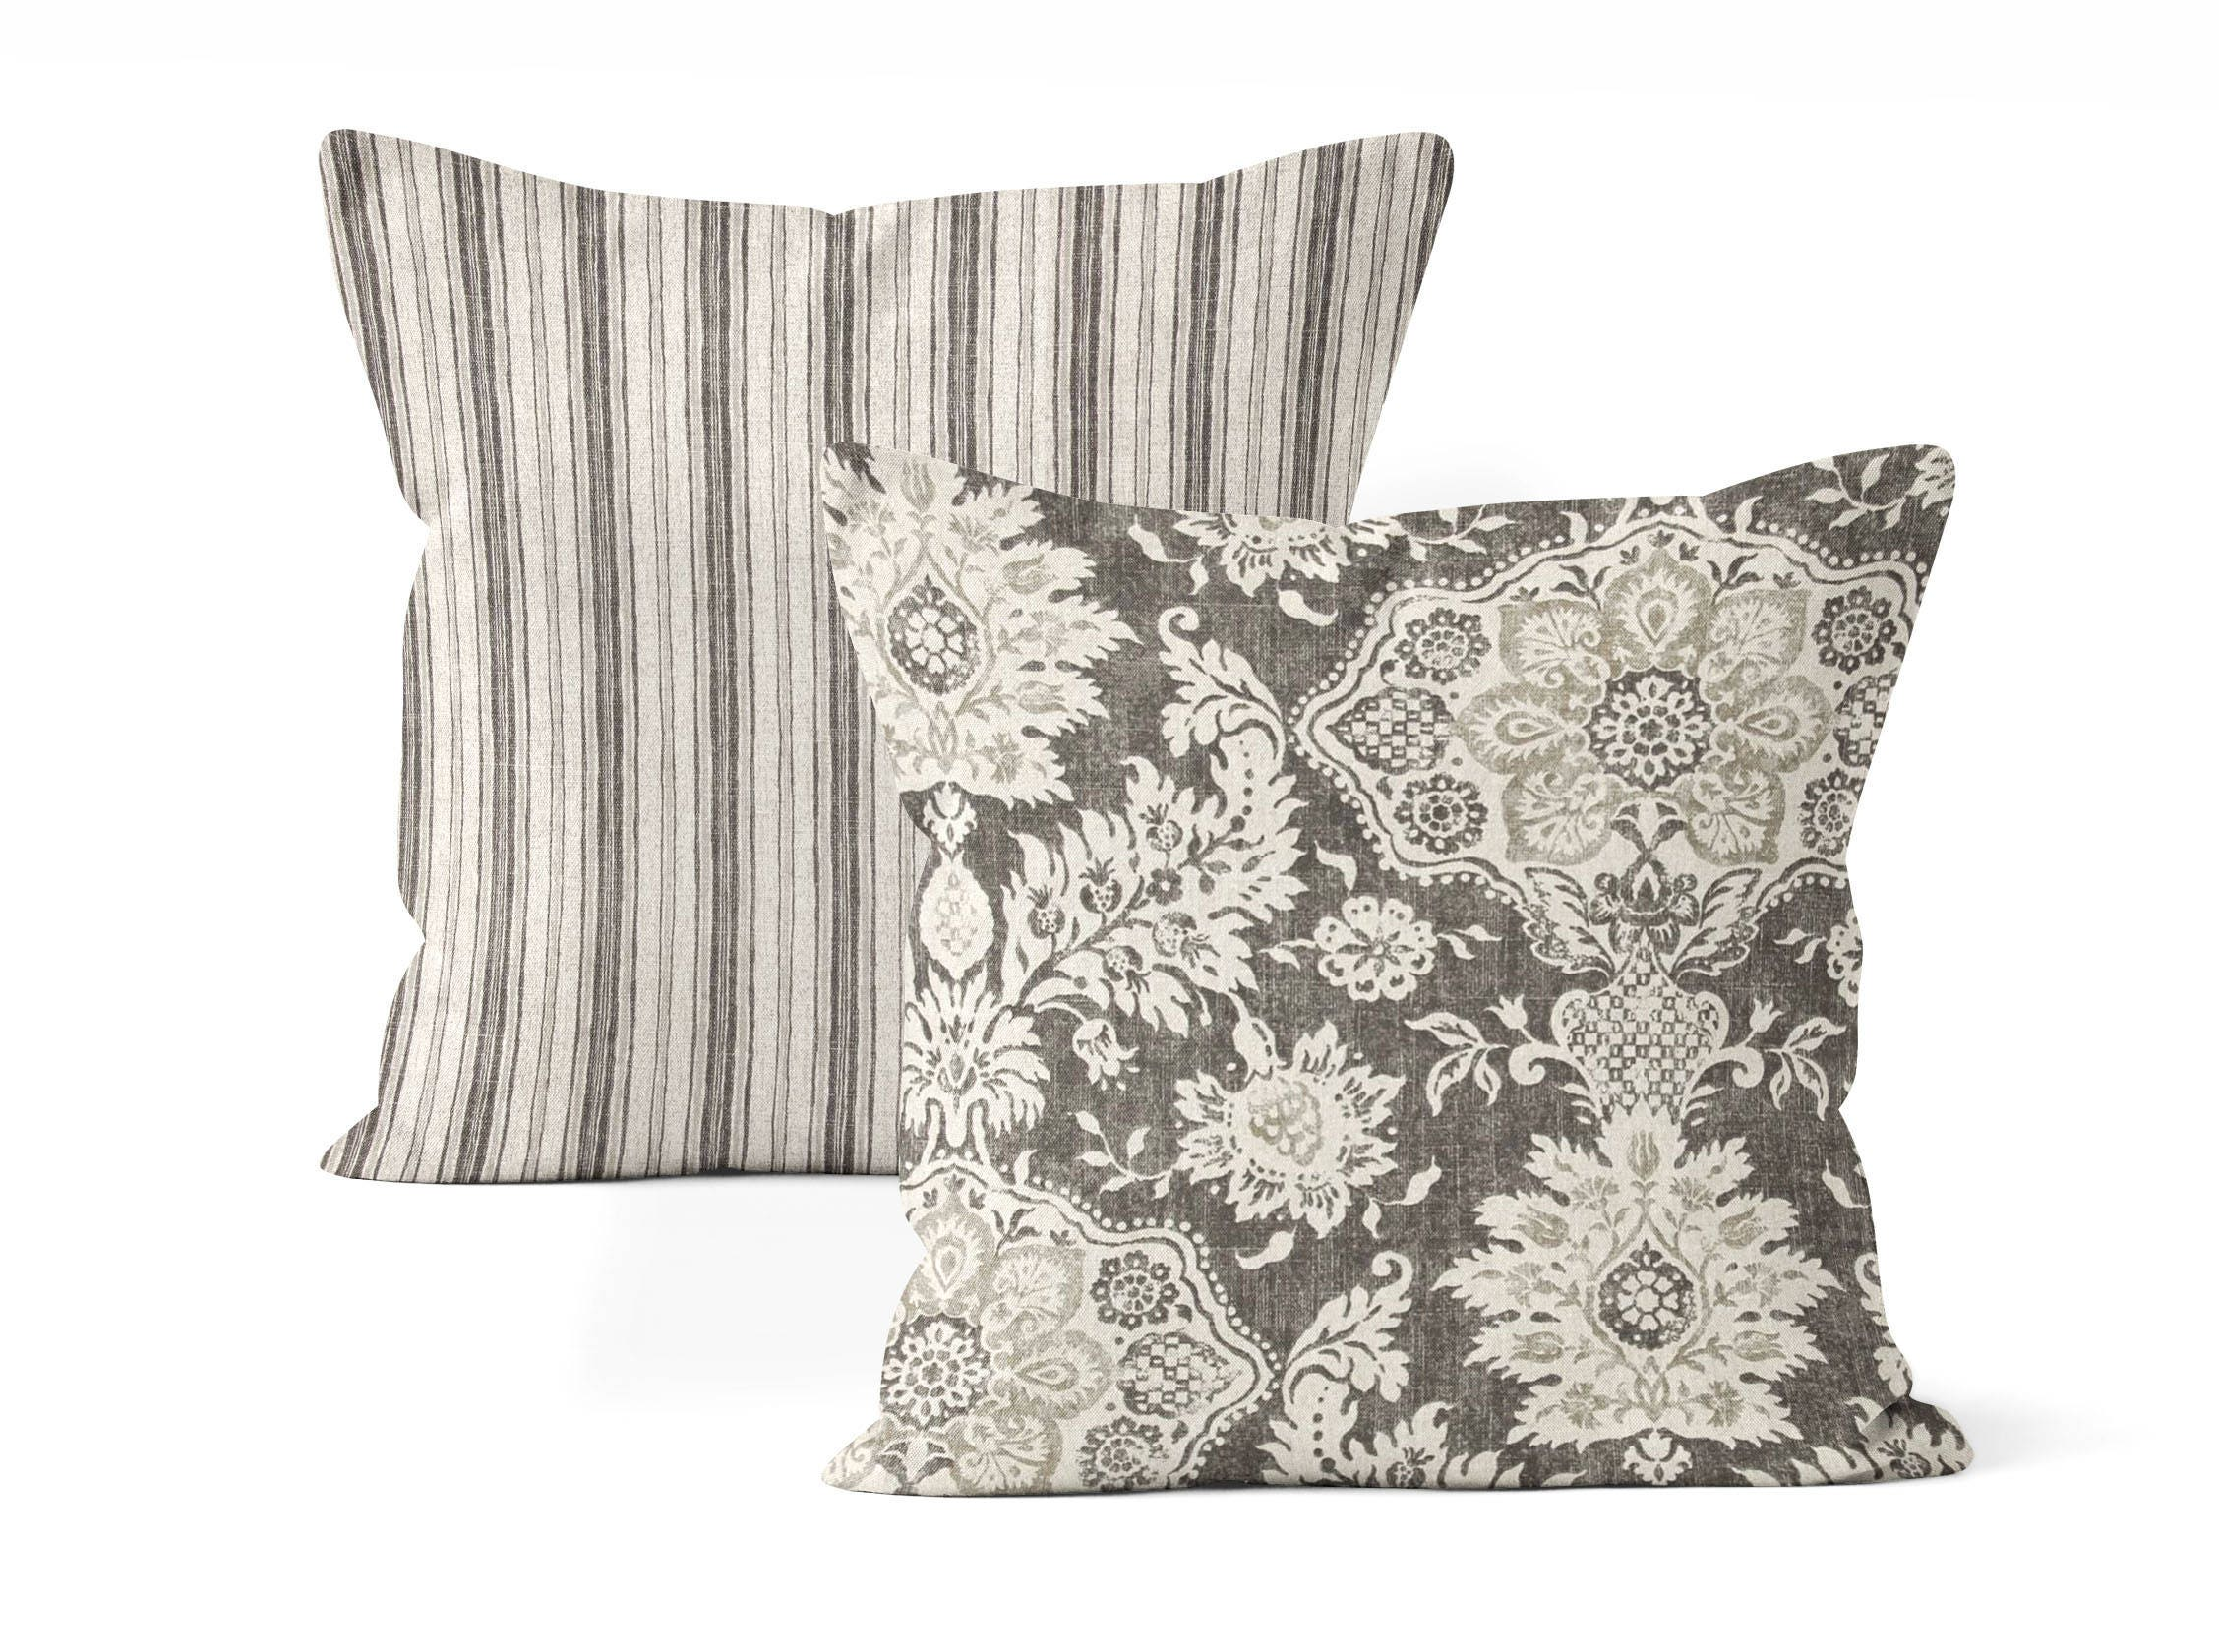 2 Farmhouse Pillow Cover Set Throw Pillow Coverfloral And